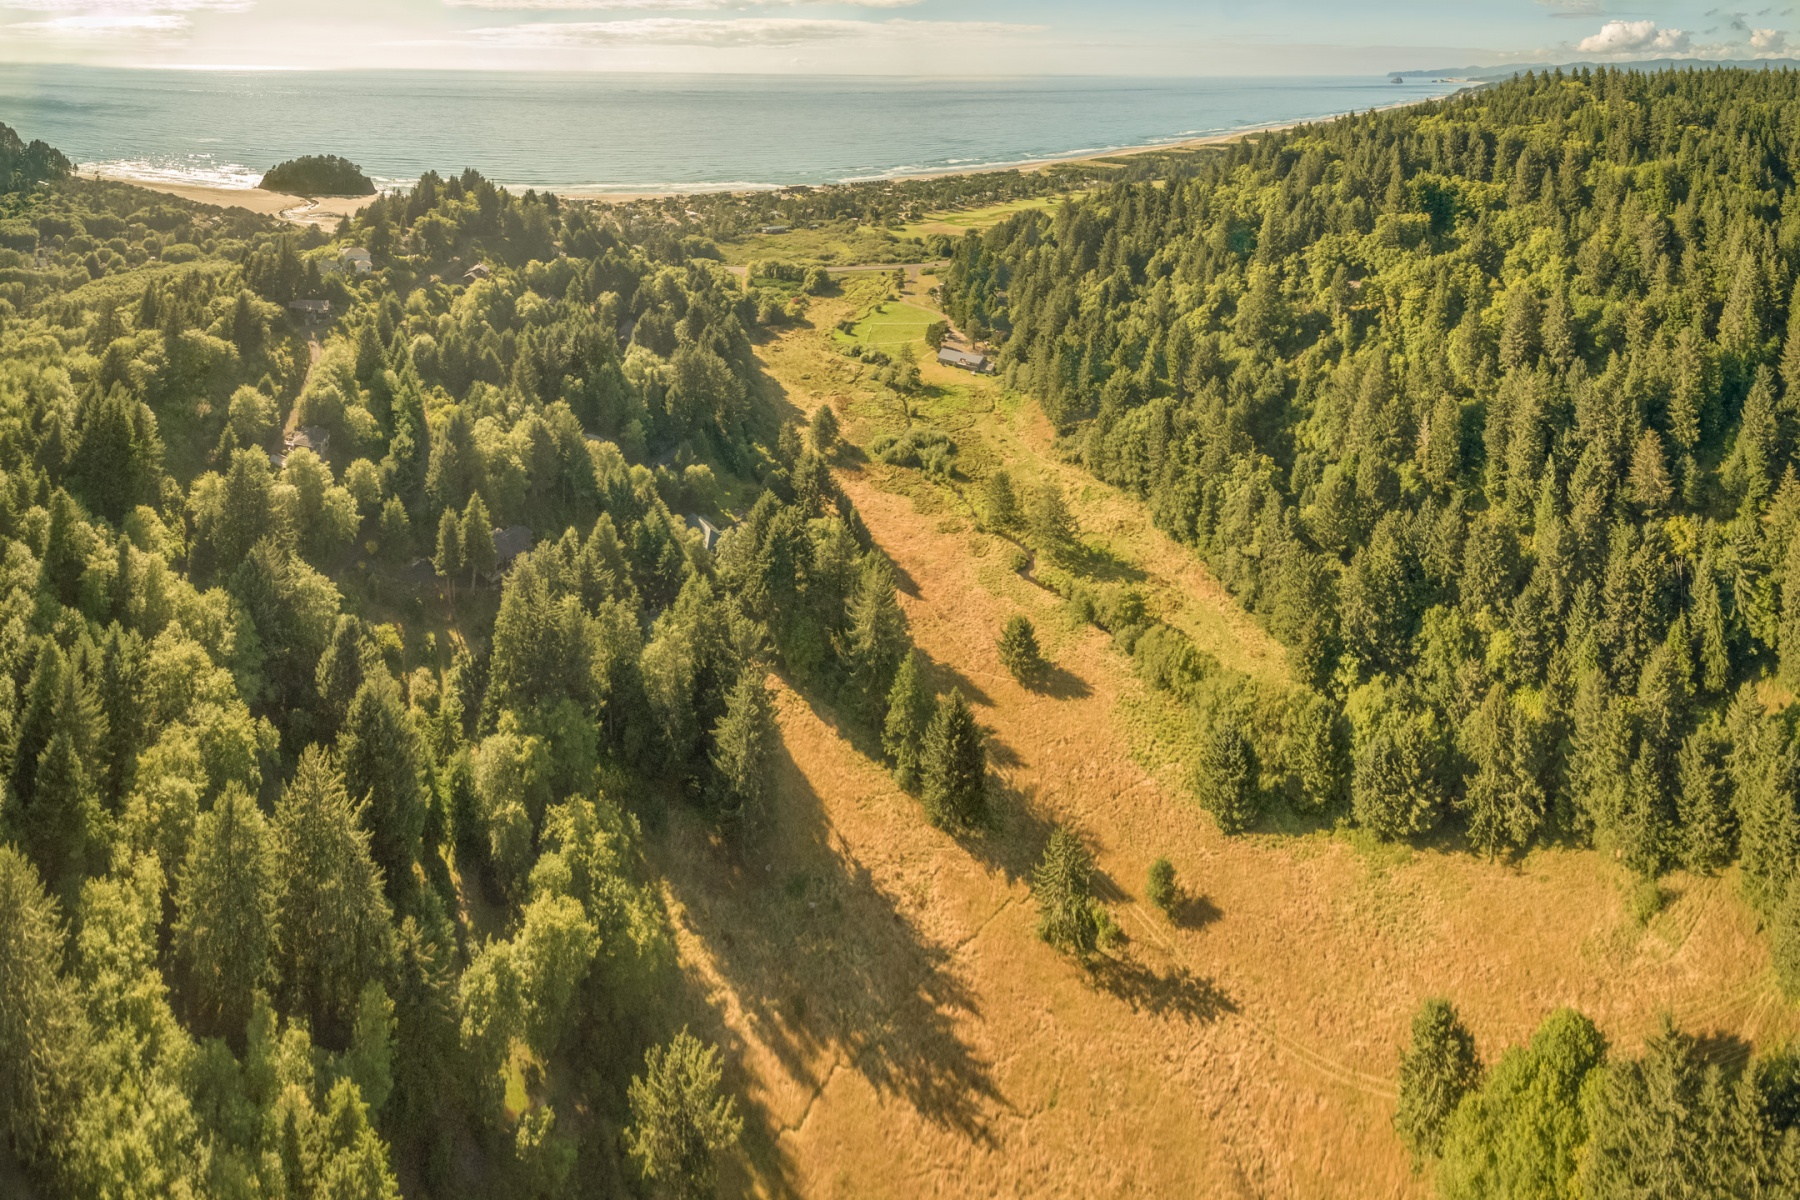 Land for Sale at 5005 SCHOOLHOUSE RD, NESKOWIN Neskowin, Oregon, 97149 United States